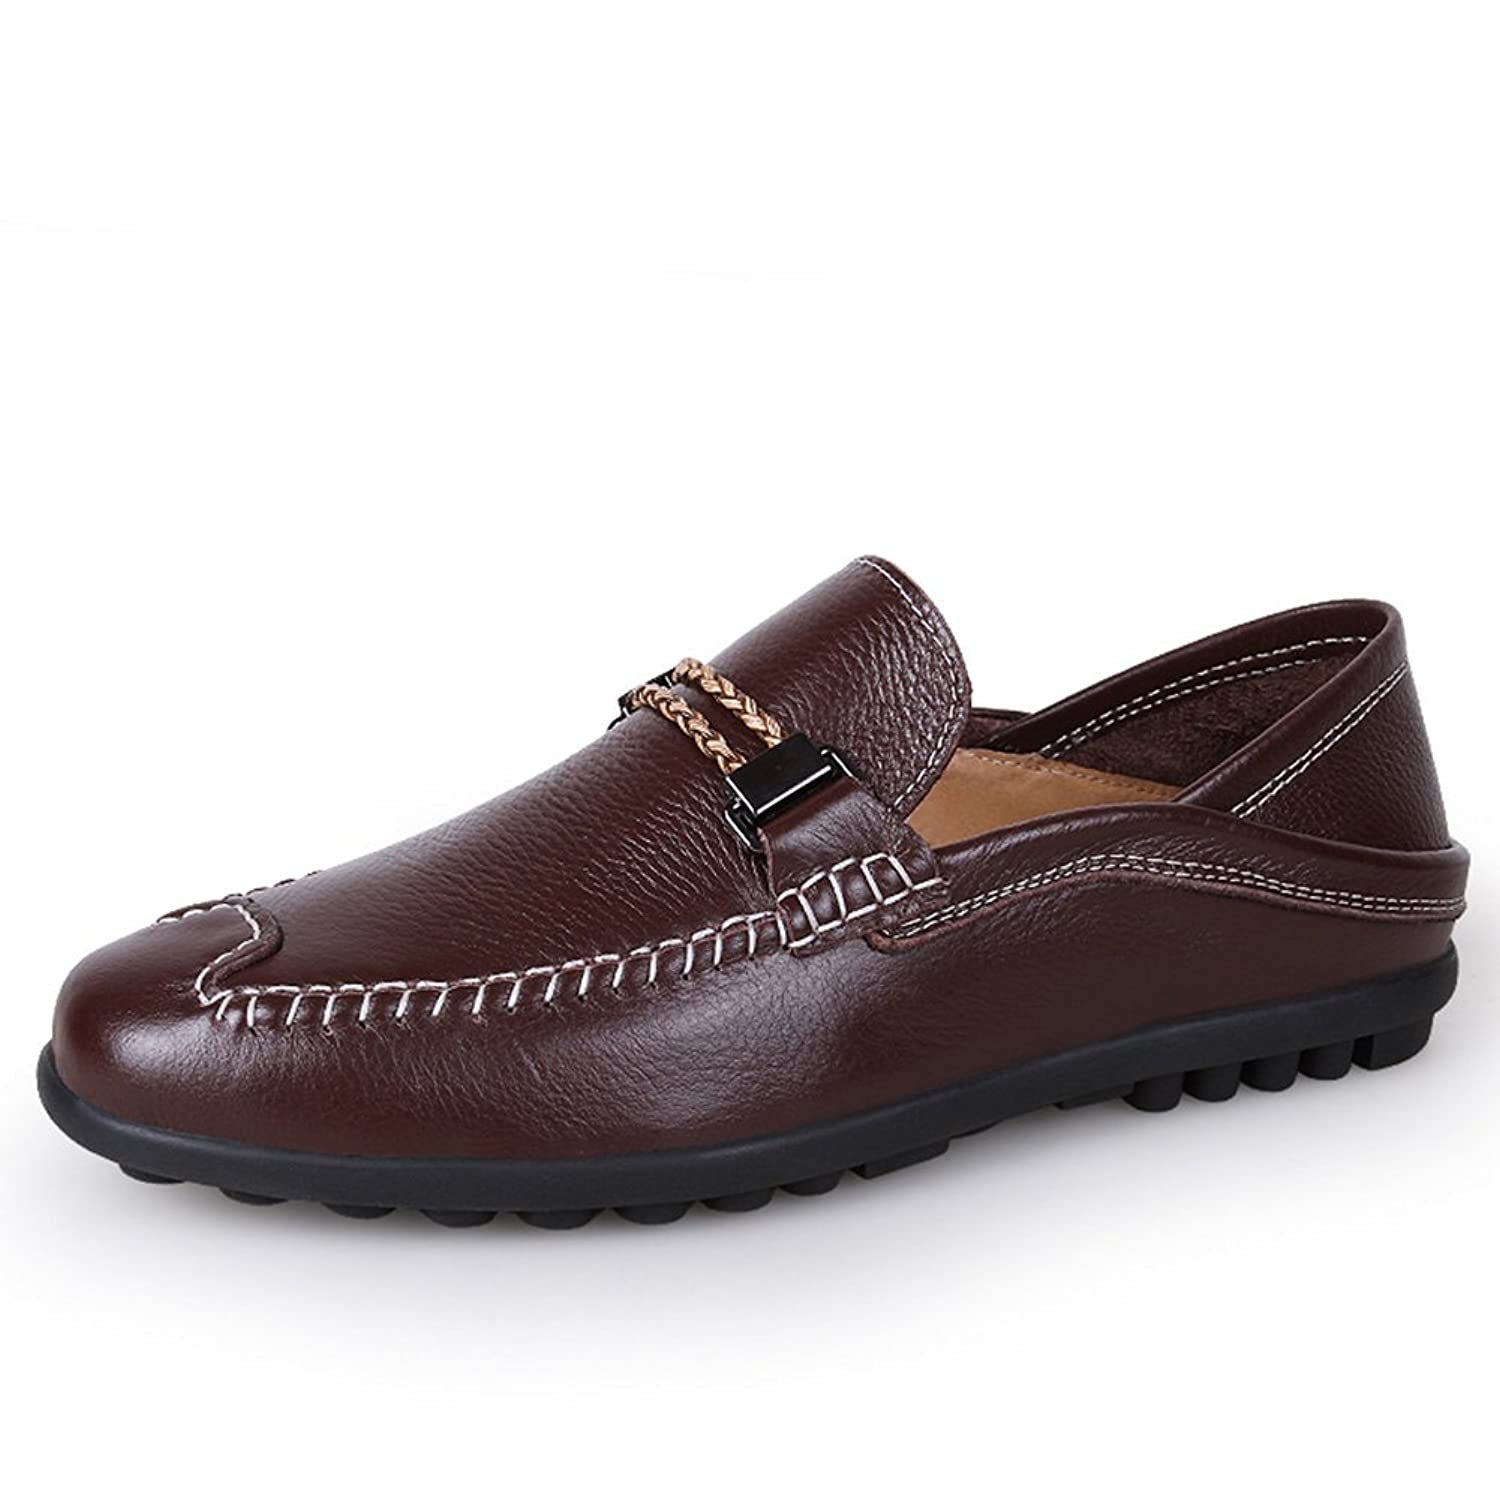 aaae464bff3f Shenn Men s New Designed Slip on Casual Comfort Leather Loafers Shoes  delicate